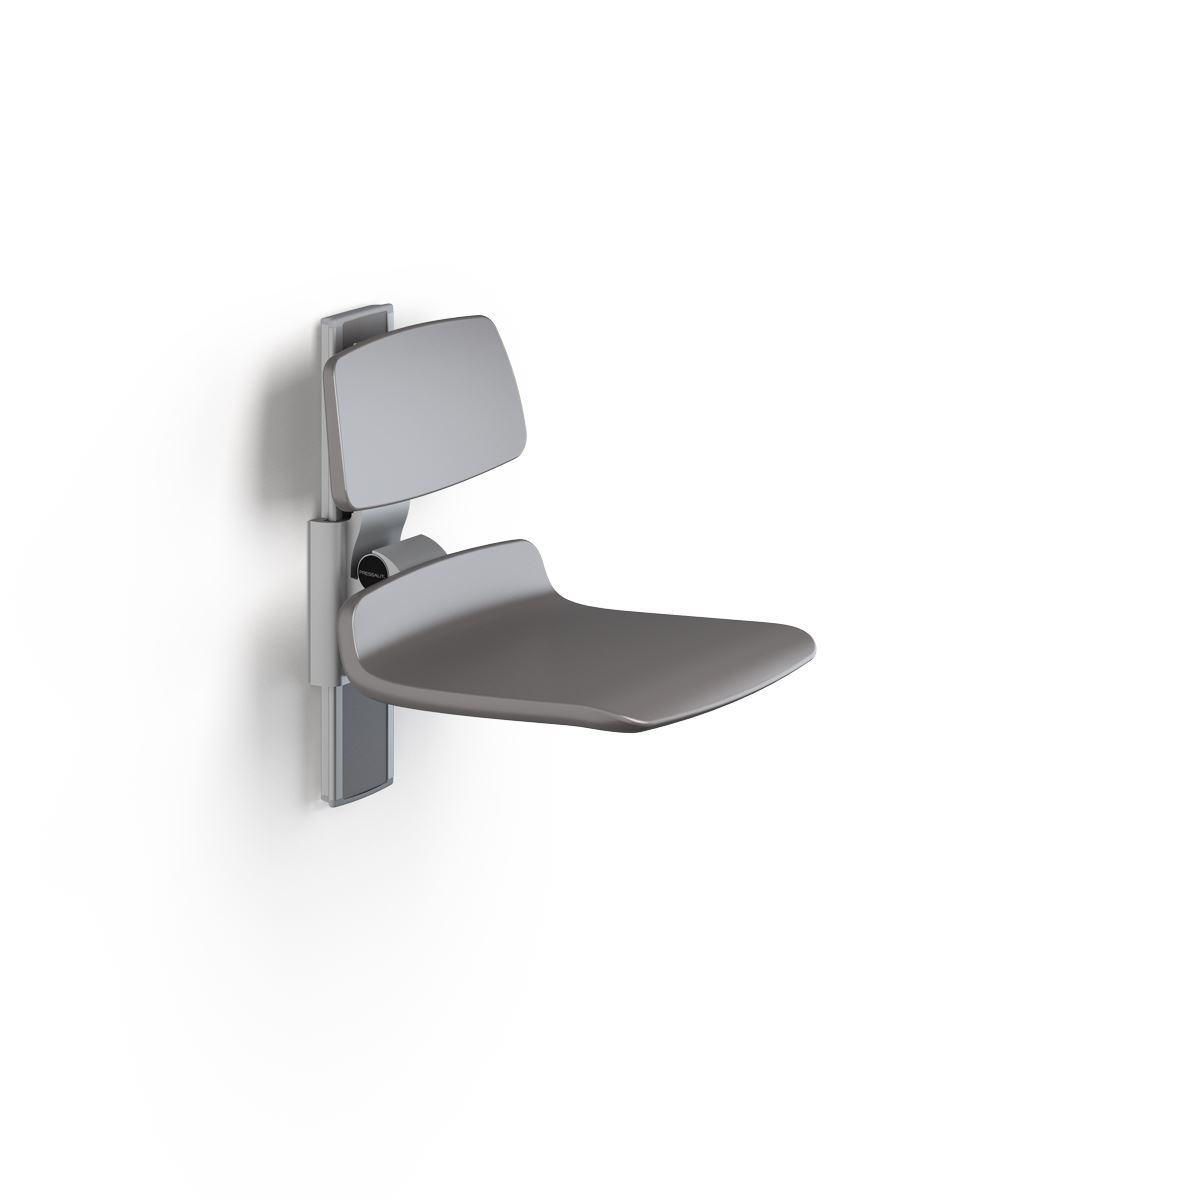 PLUS shower seat 450, manually height adjustable